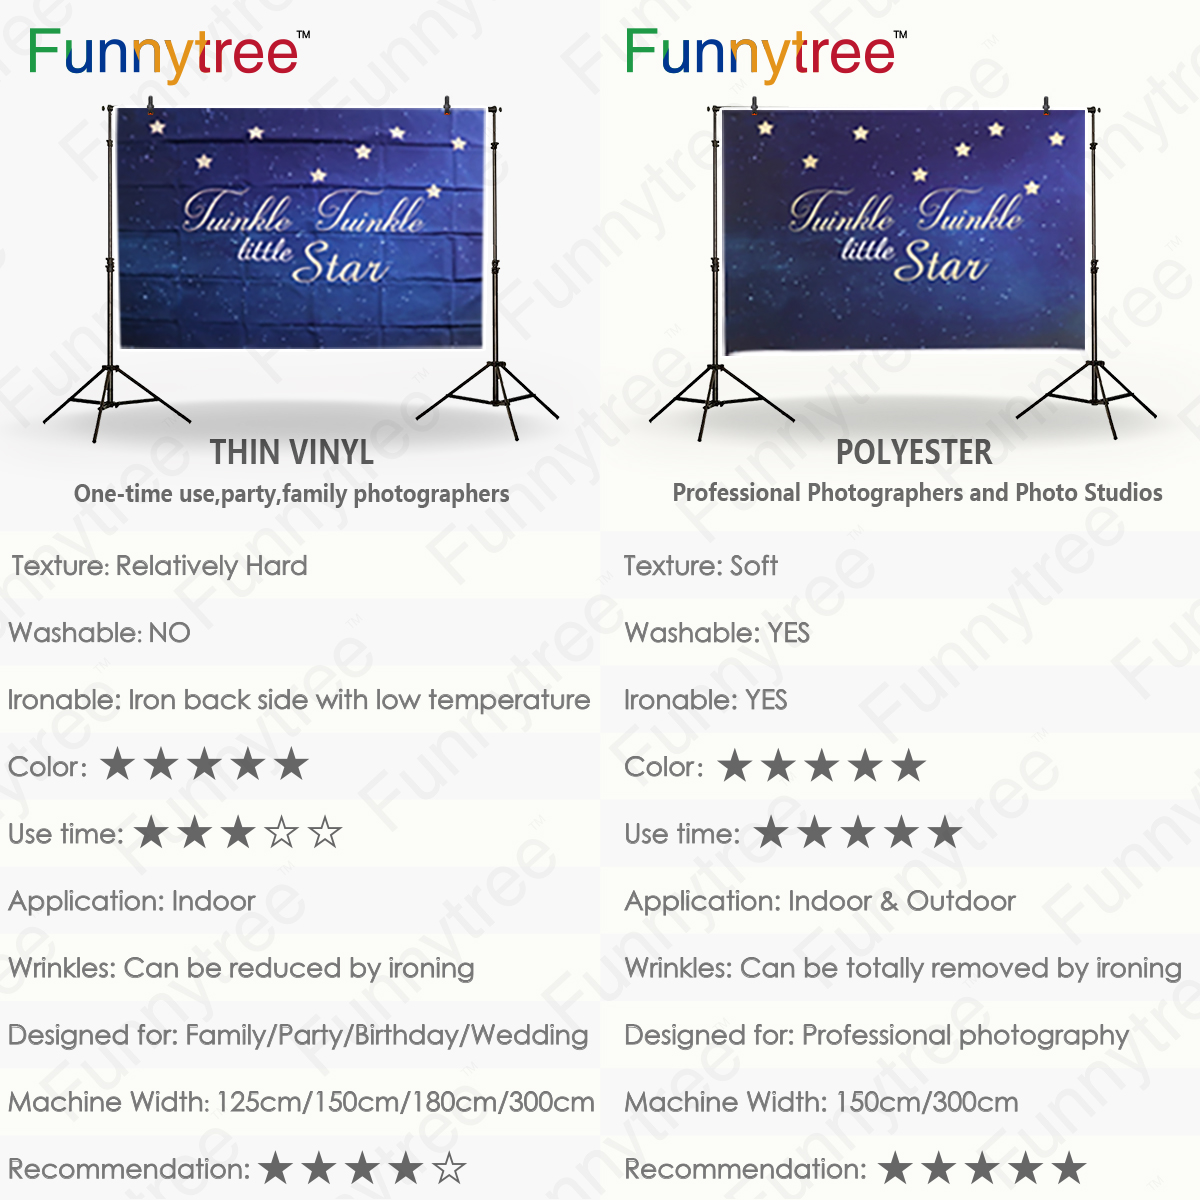 Funnytree background for photography stars red carpet party decor hollywood city night backdrop photo studio photocall new